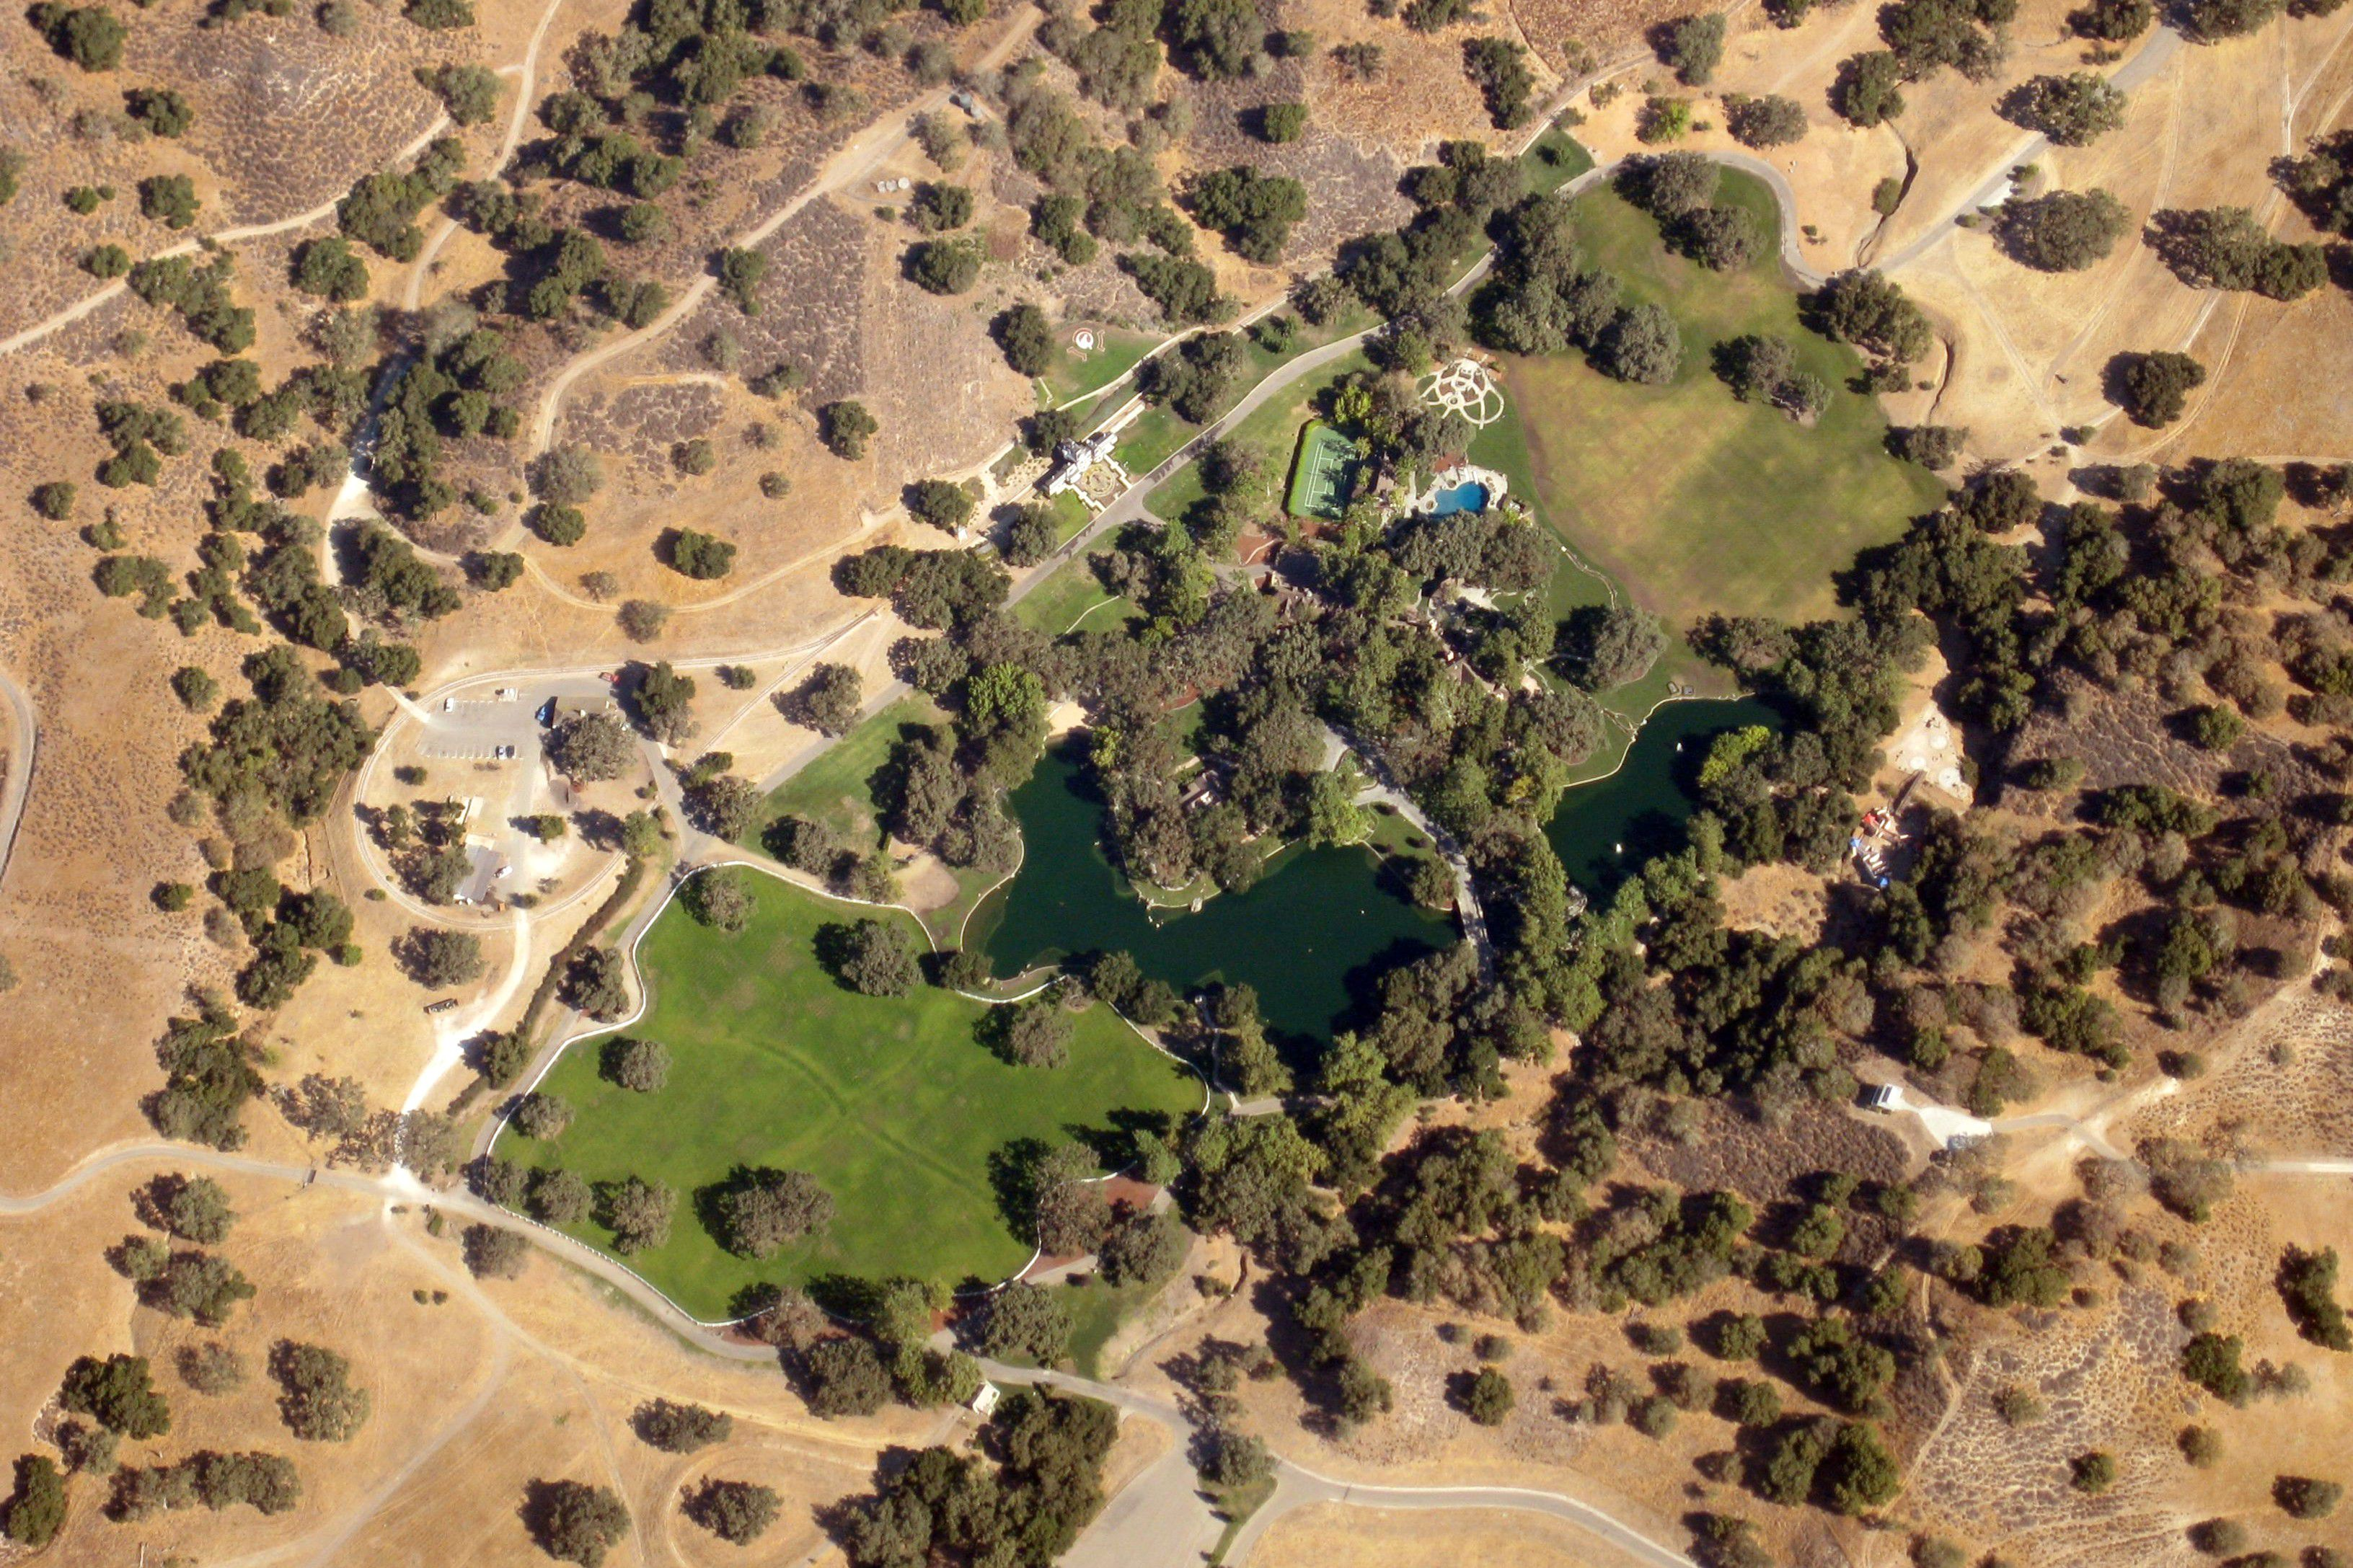 A distant aerial view of Neverland Ranch reveals a lush, green oasis surrounded by sere brown desert